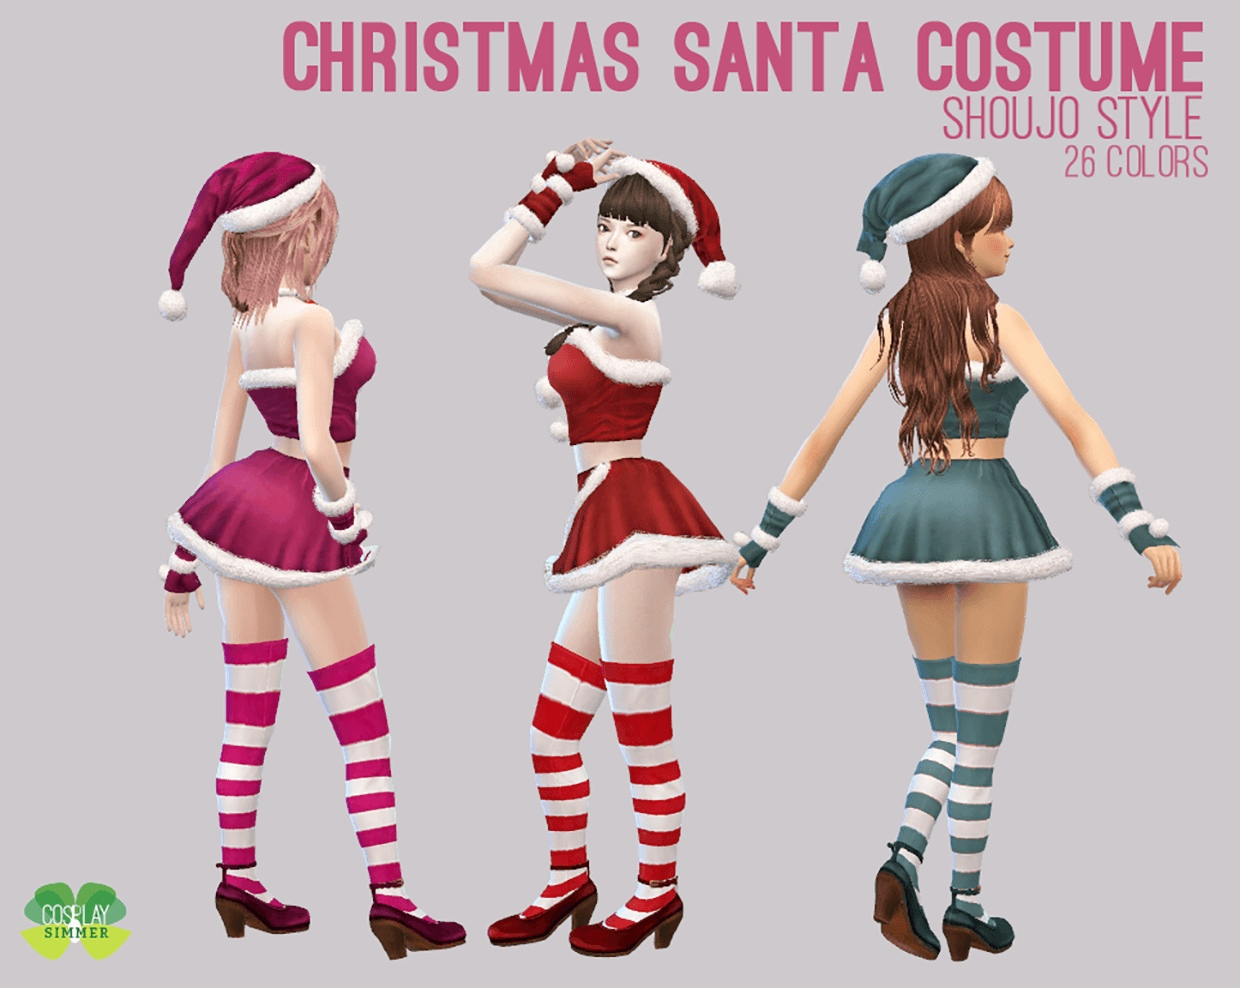 Christmas Santa Costume by Cosplay Simmer